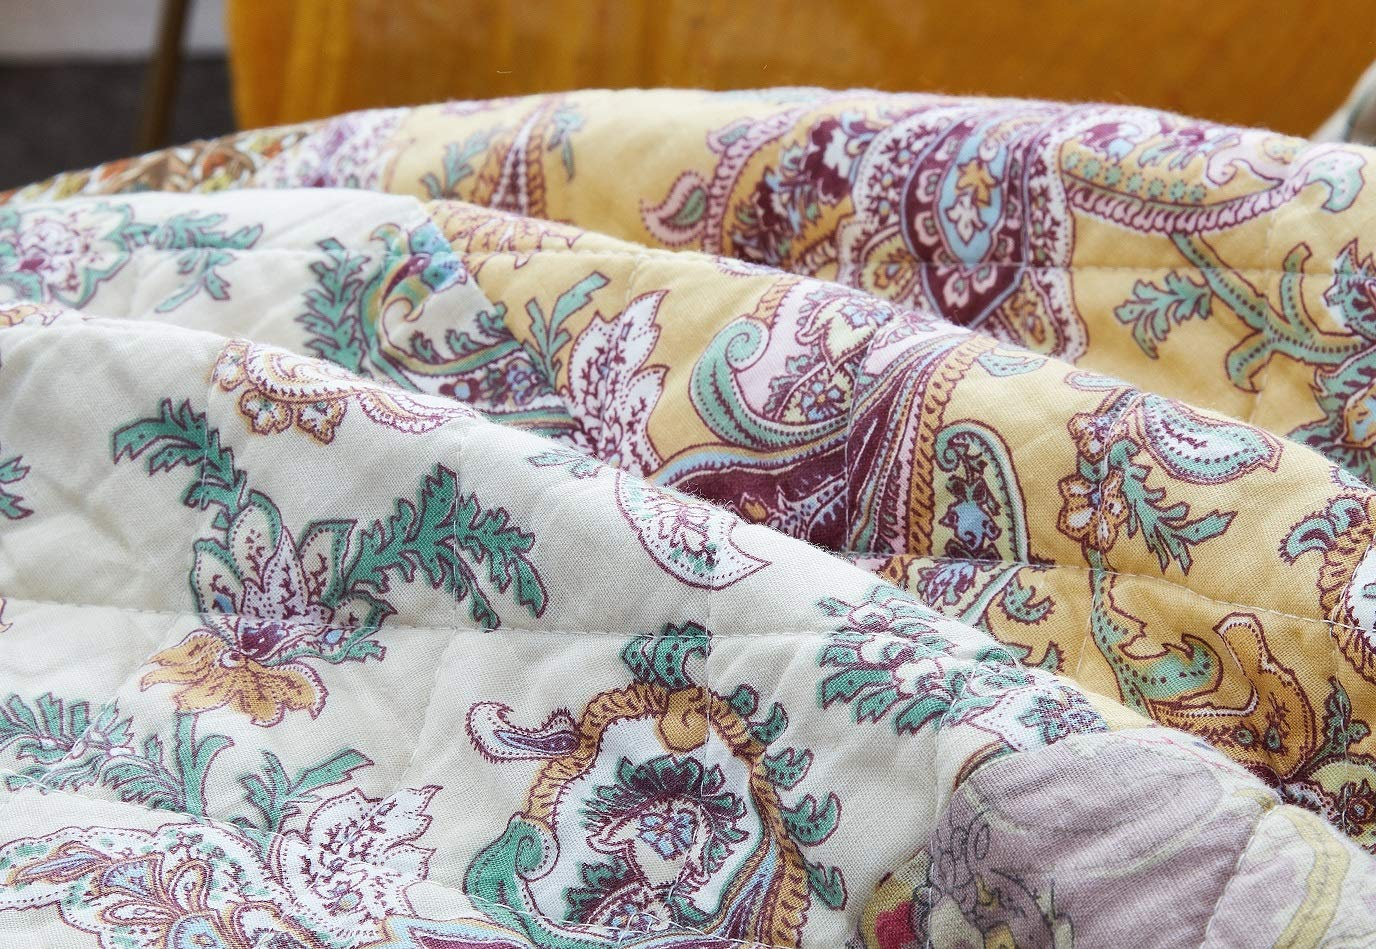 DaDa Bedding Bohemian Patchwork Bedspread - Burgundy Wine Velvety Trim - Vintage Floral Roses Paisley - Bright Vibrant Multi-Colorful Quilted Set - Queen - 3-Pieces by DaDa Bedding Collection (Image #5)